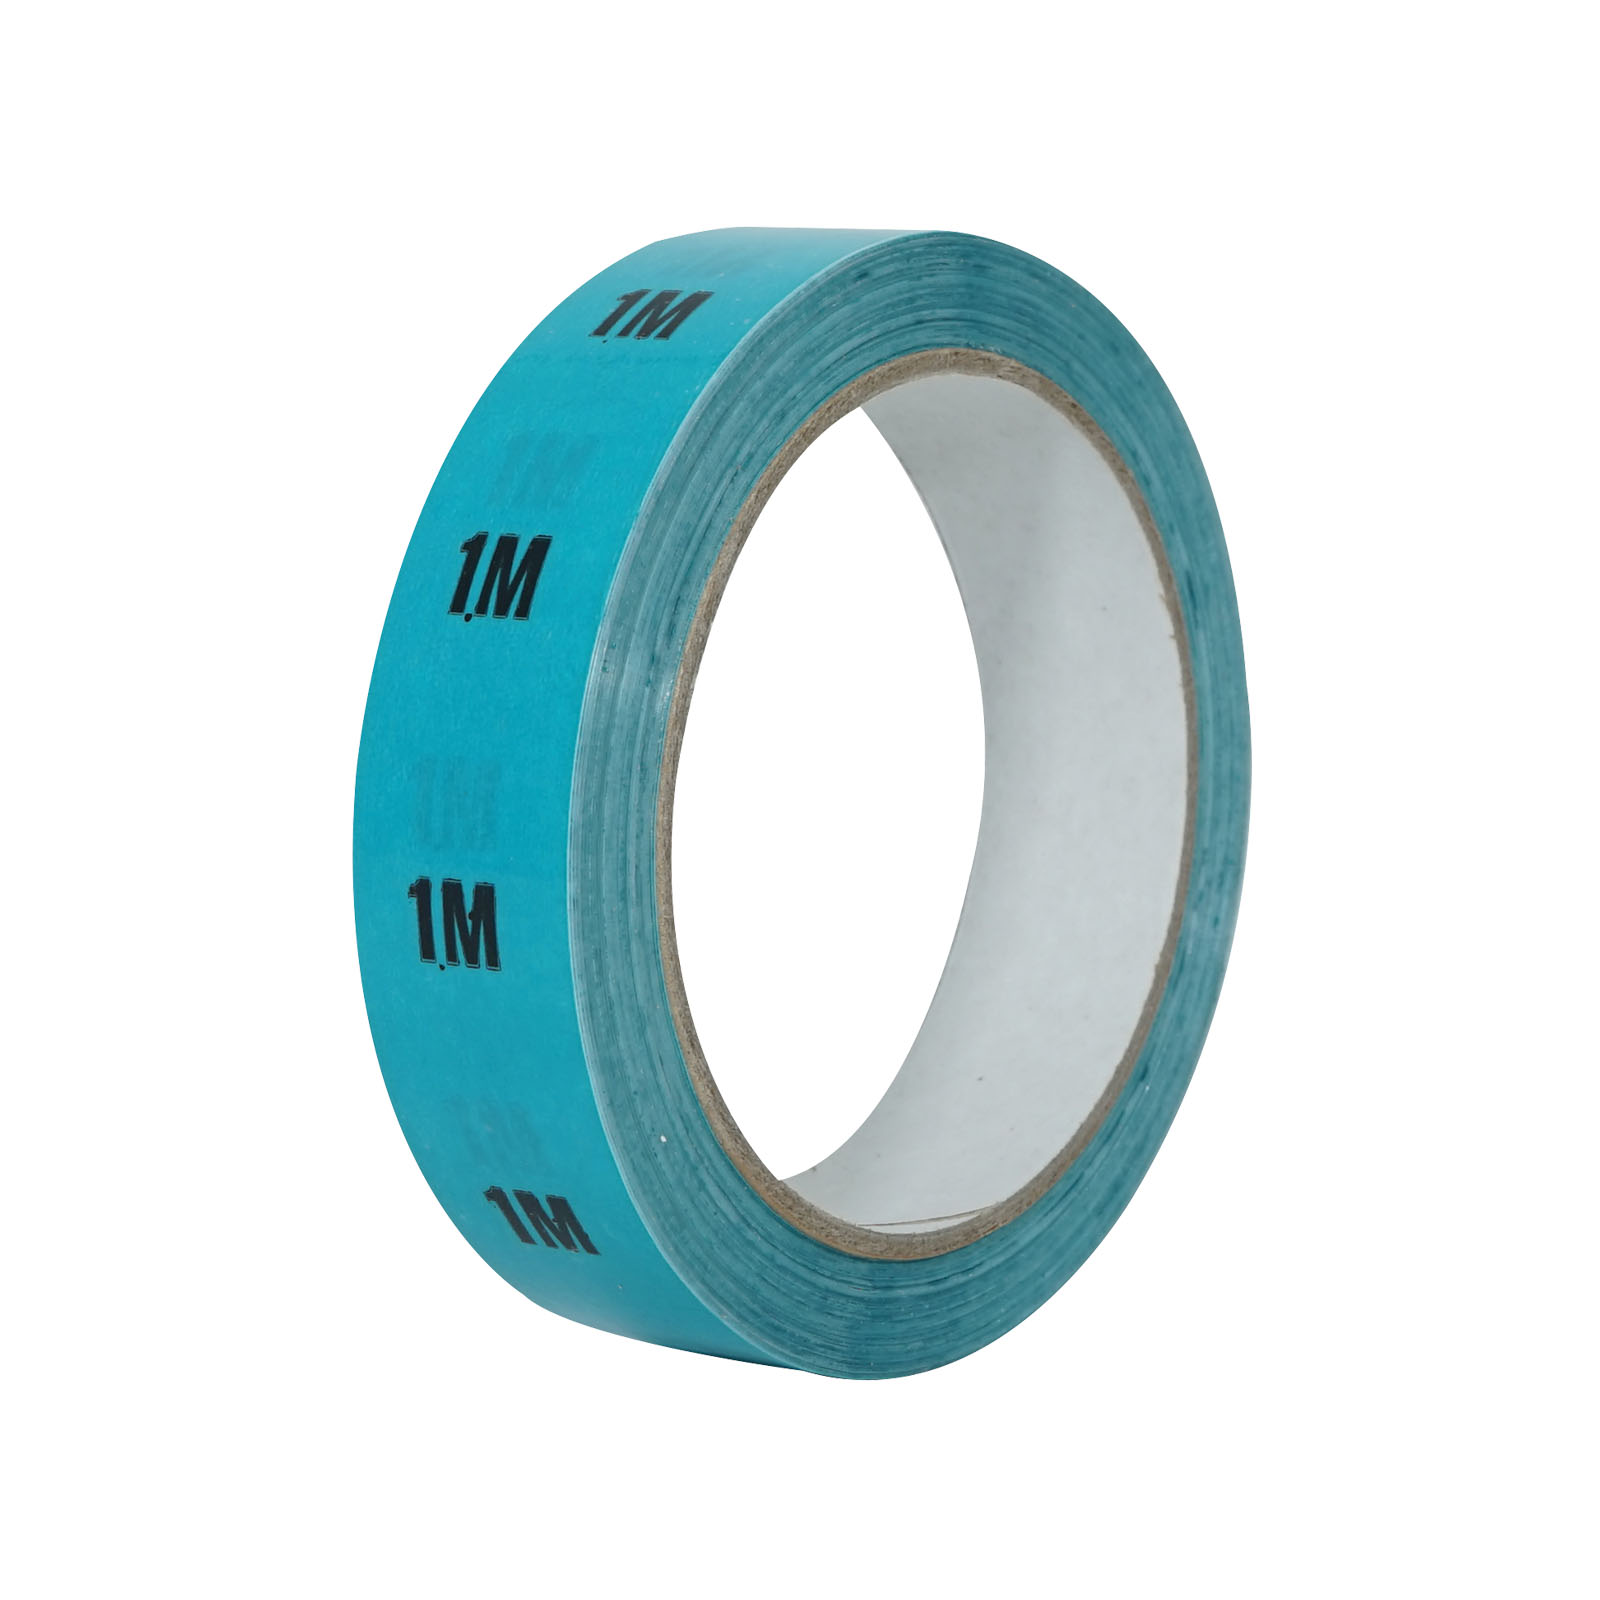 1m Light Blue Cable Length ID Tape